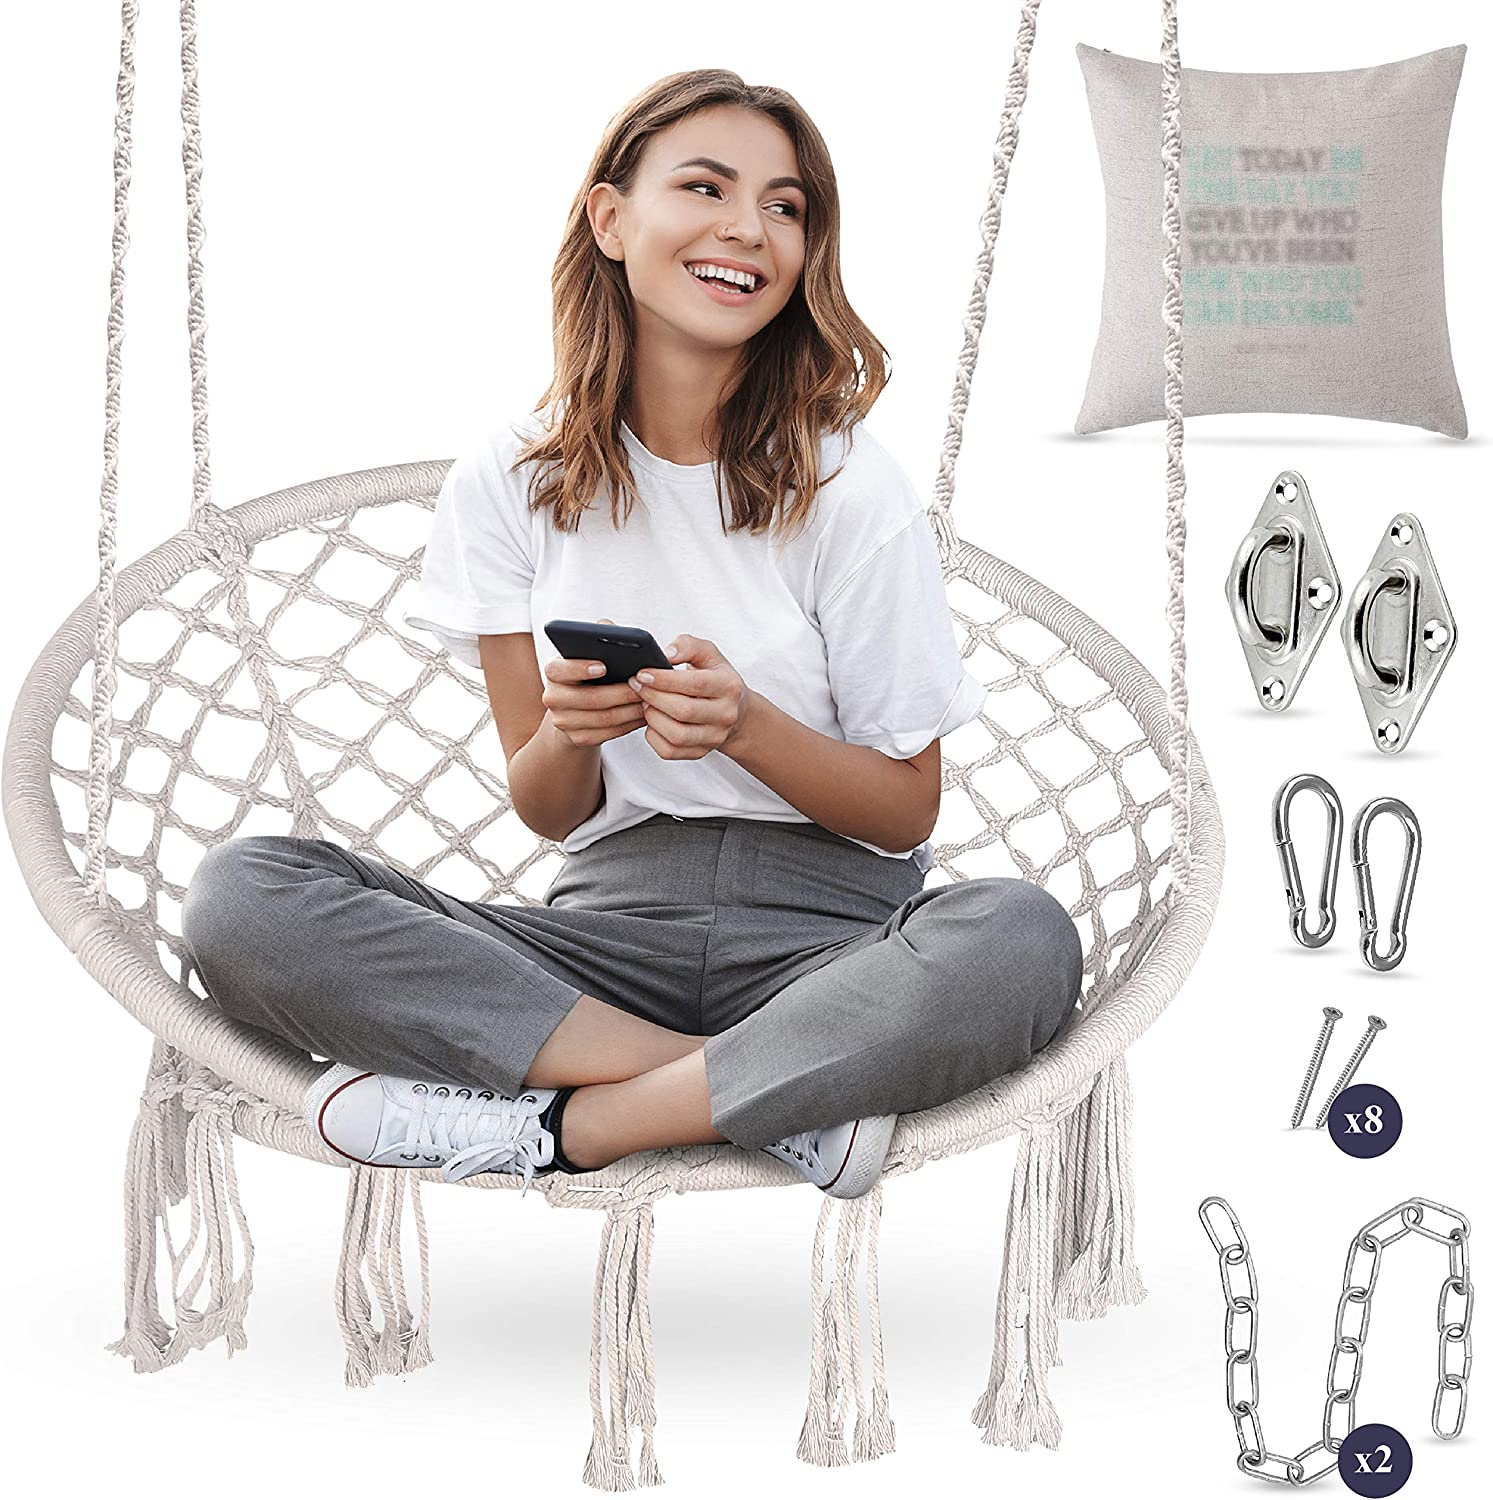 Macrame Chair Swing | Hammock w/ Full Hanging Kit - Hanging Chair Handmade 100% Cotton for Comfort and Relaxation Indoor, Outdoor, Home, Deck, Patio, Yard, Garden - 265 Pound Capacity - Beige + Bonus